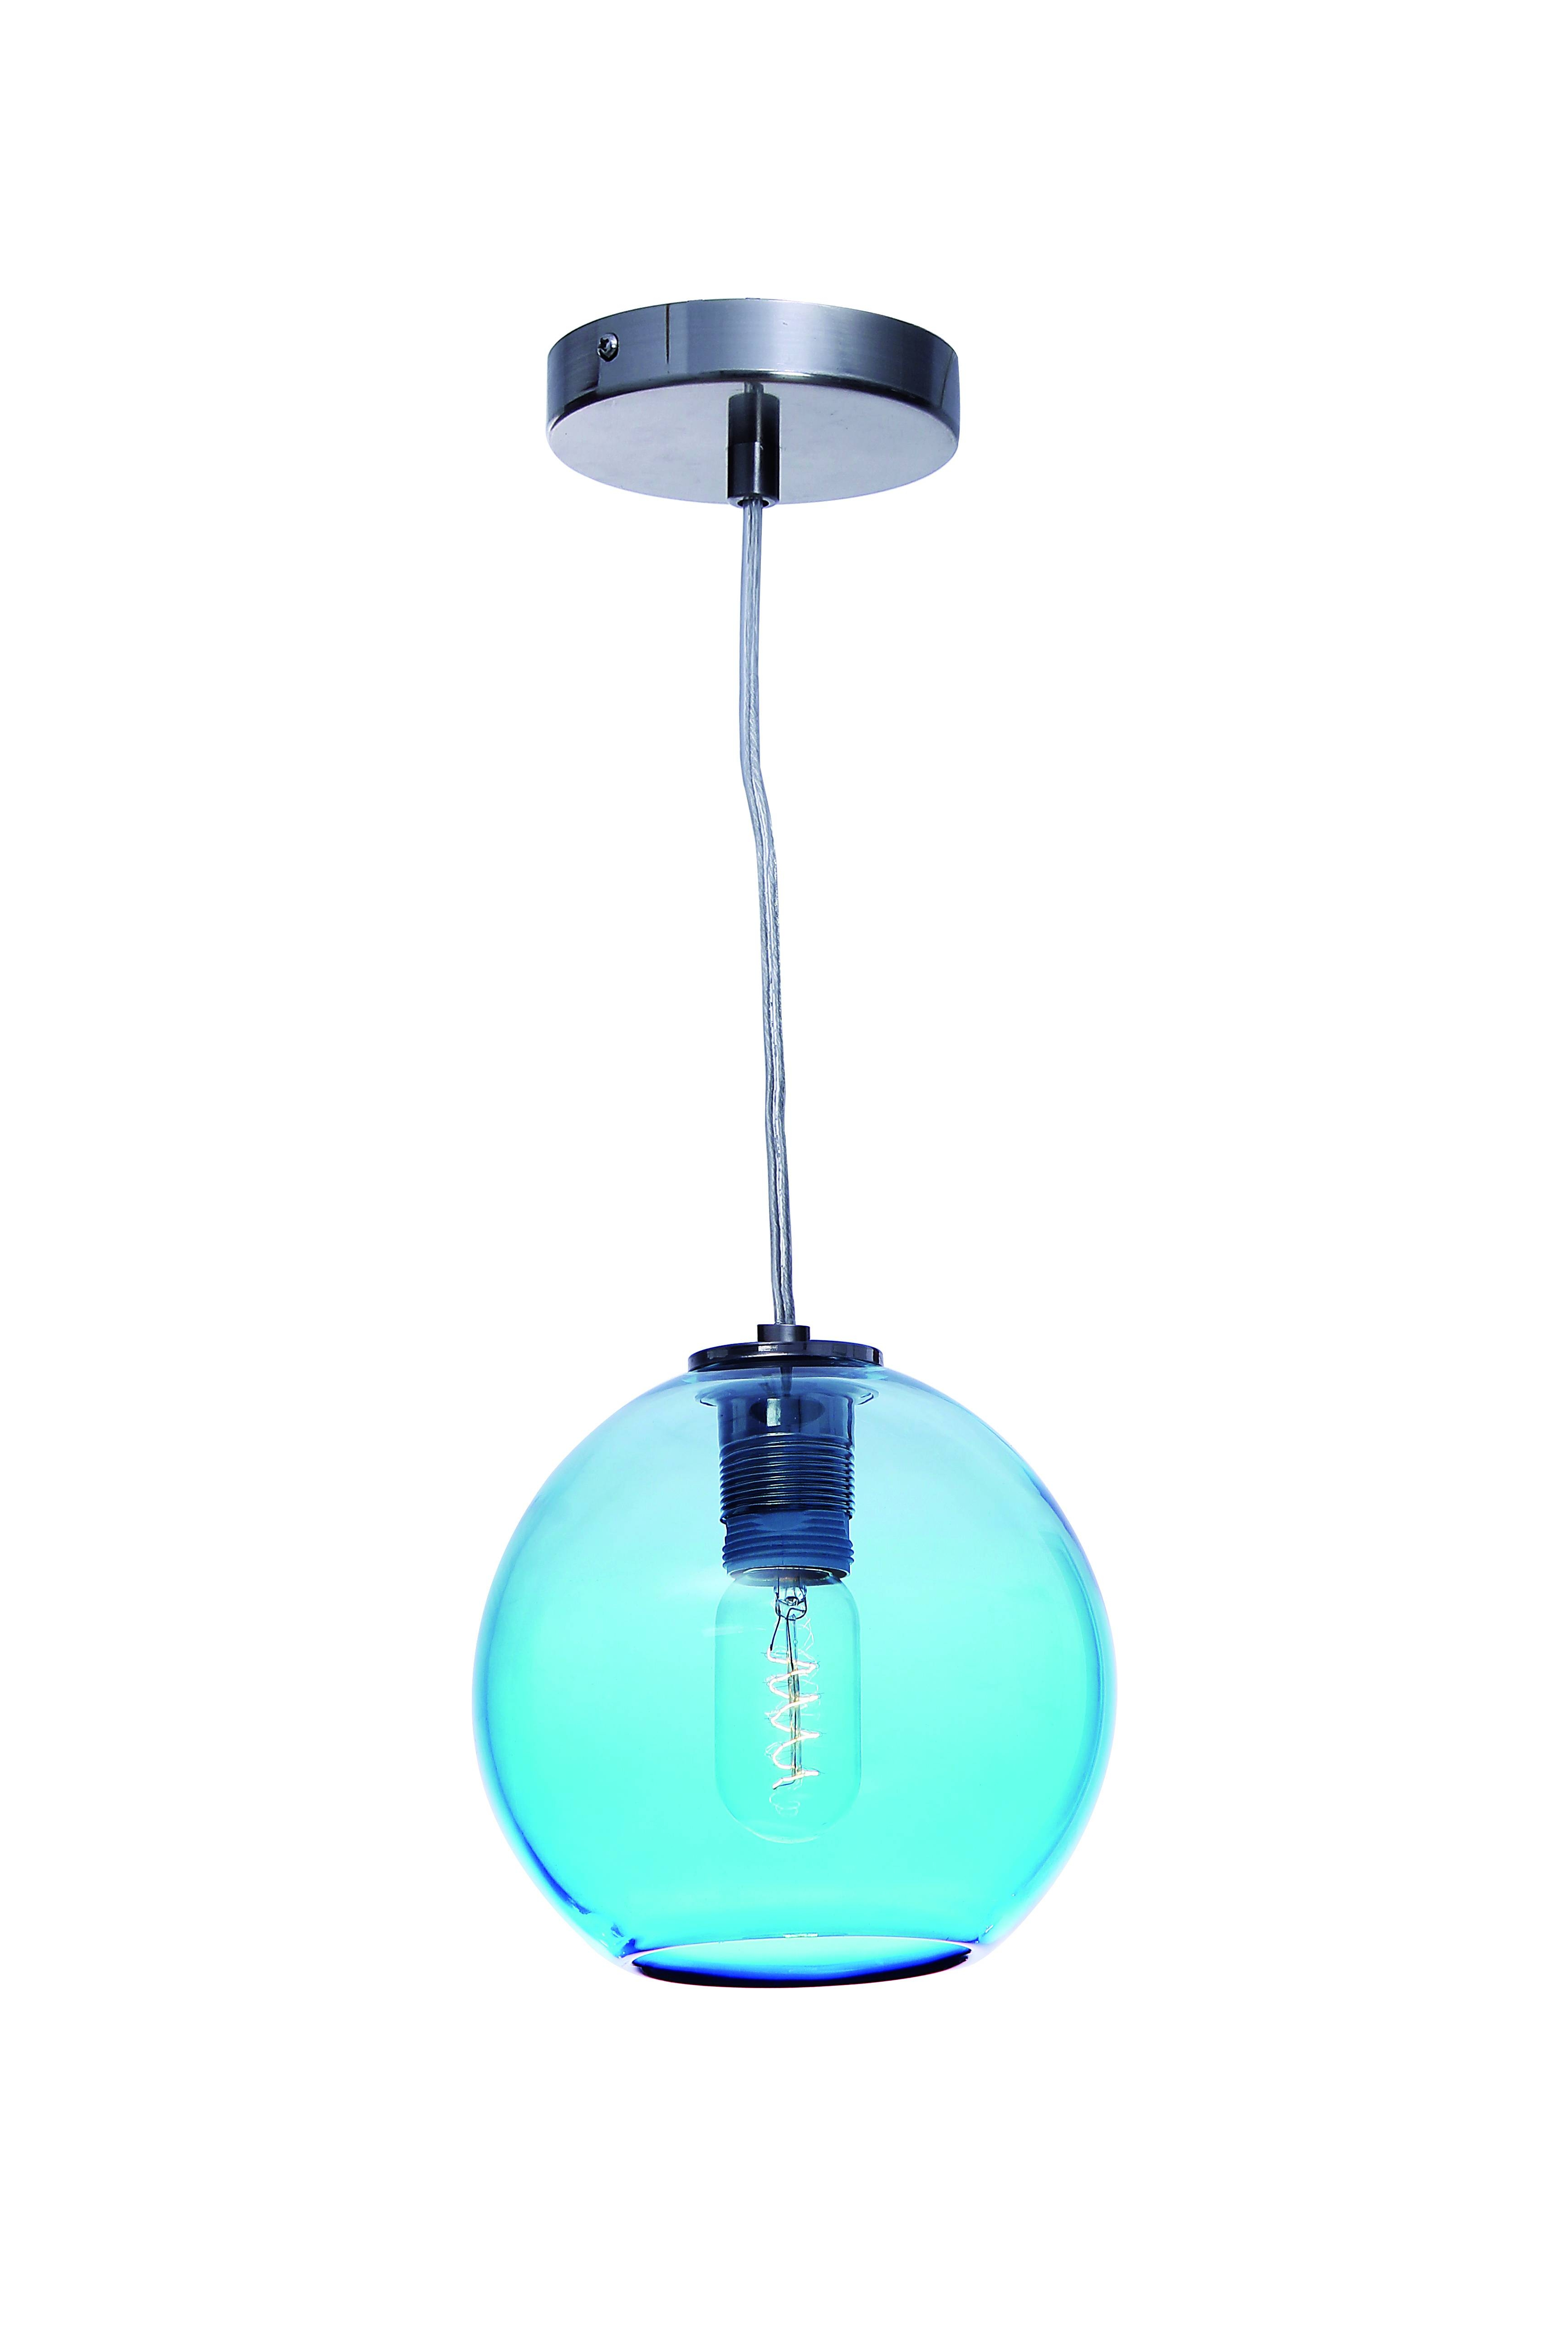 Lovely Aqua Pendant Lights 64 For Your Glass Ball Pendant Light pertaining to Aqua Pendant Lights Fixtures (Image 9 of 15)